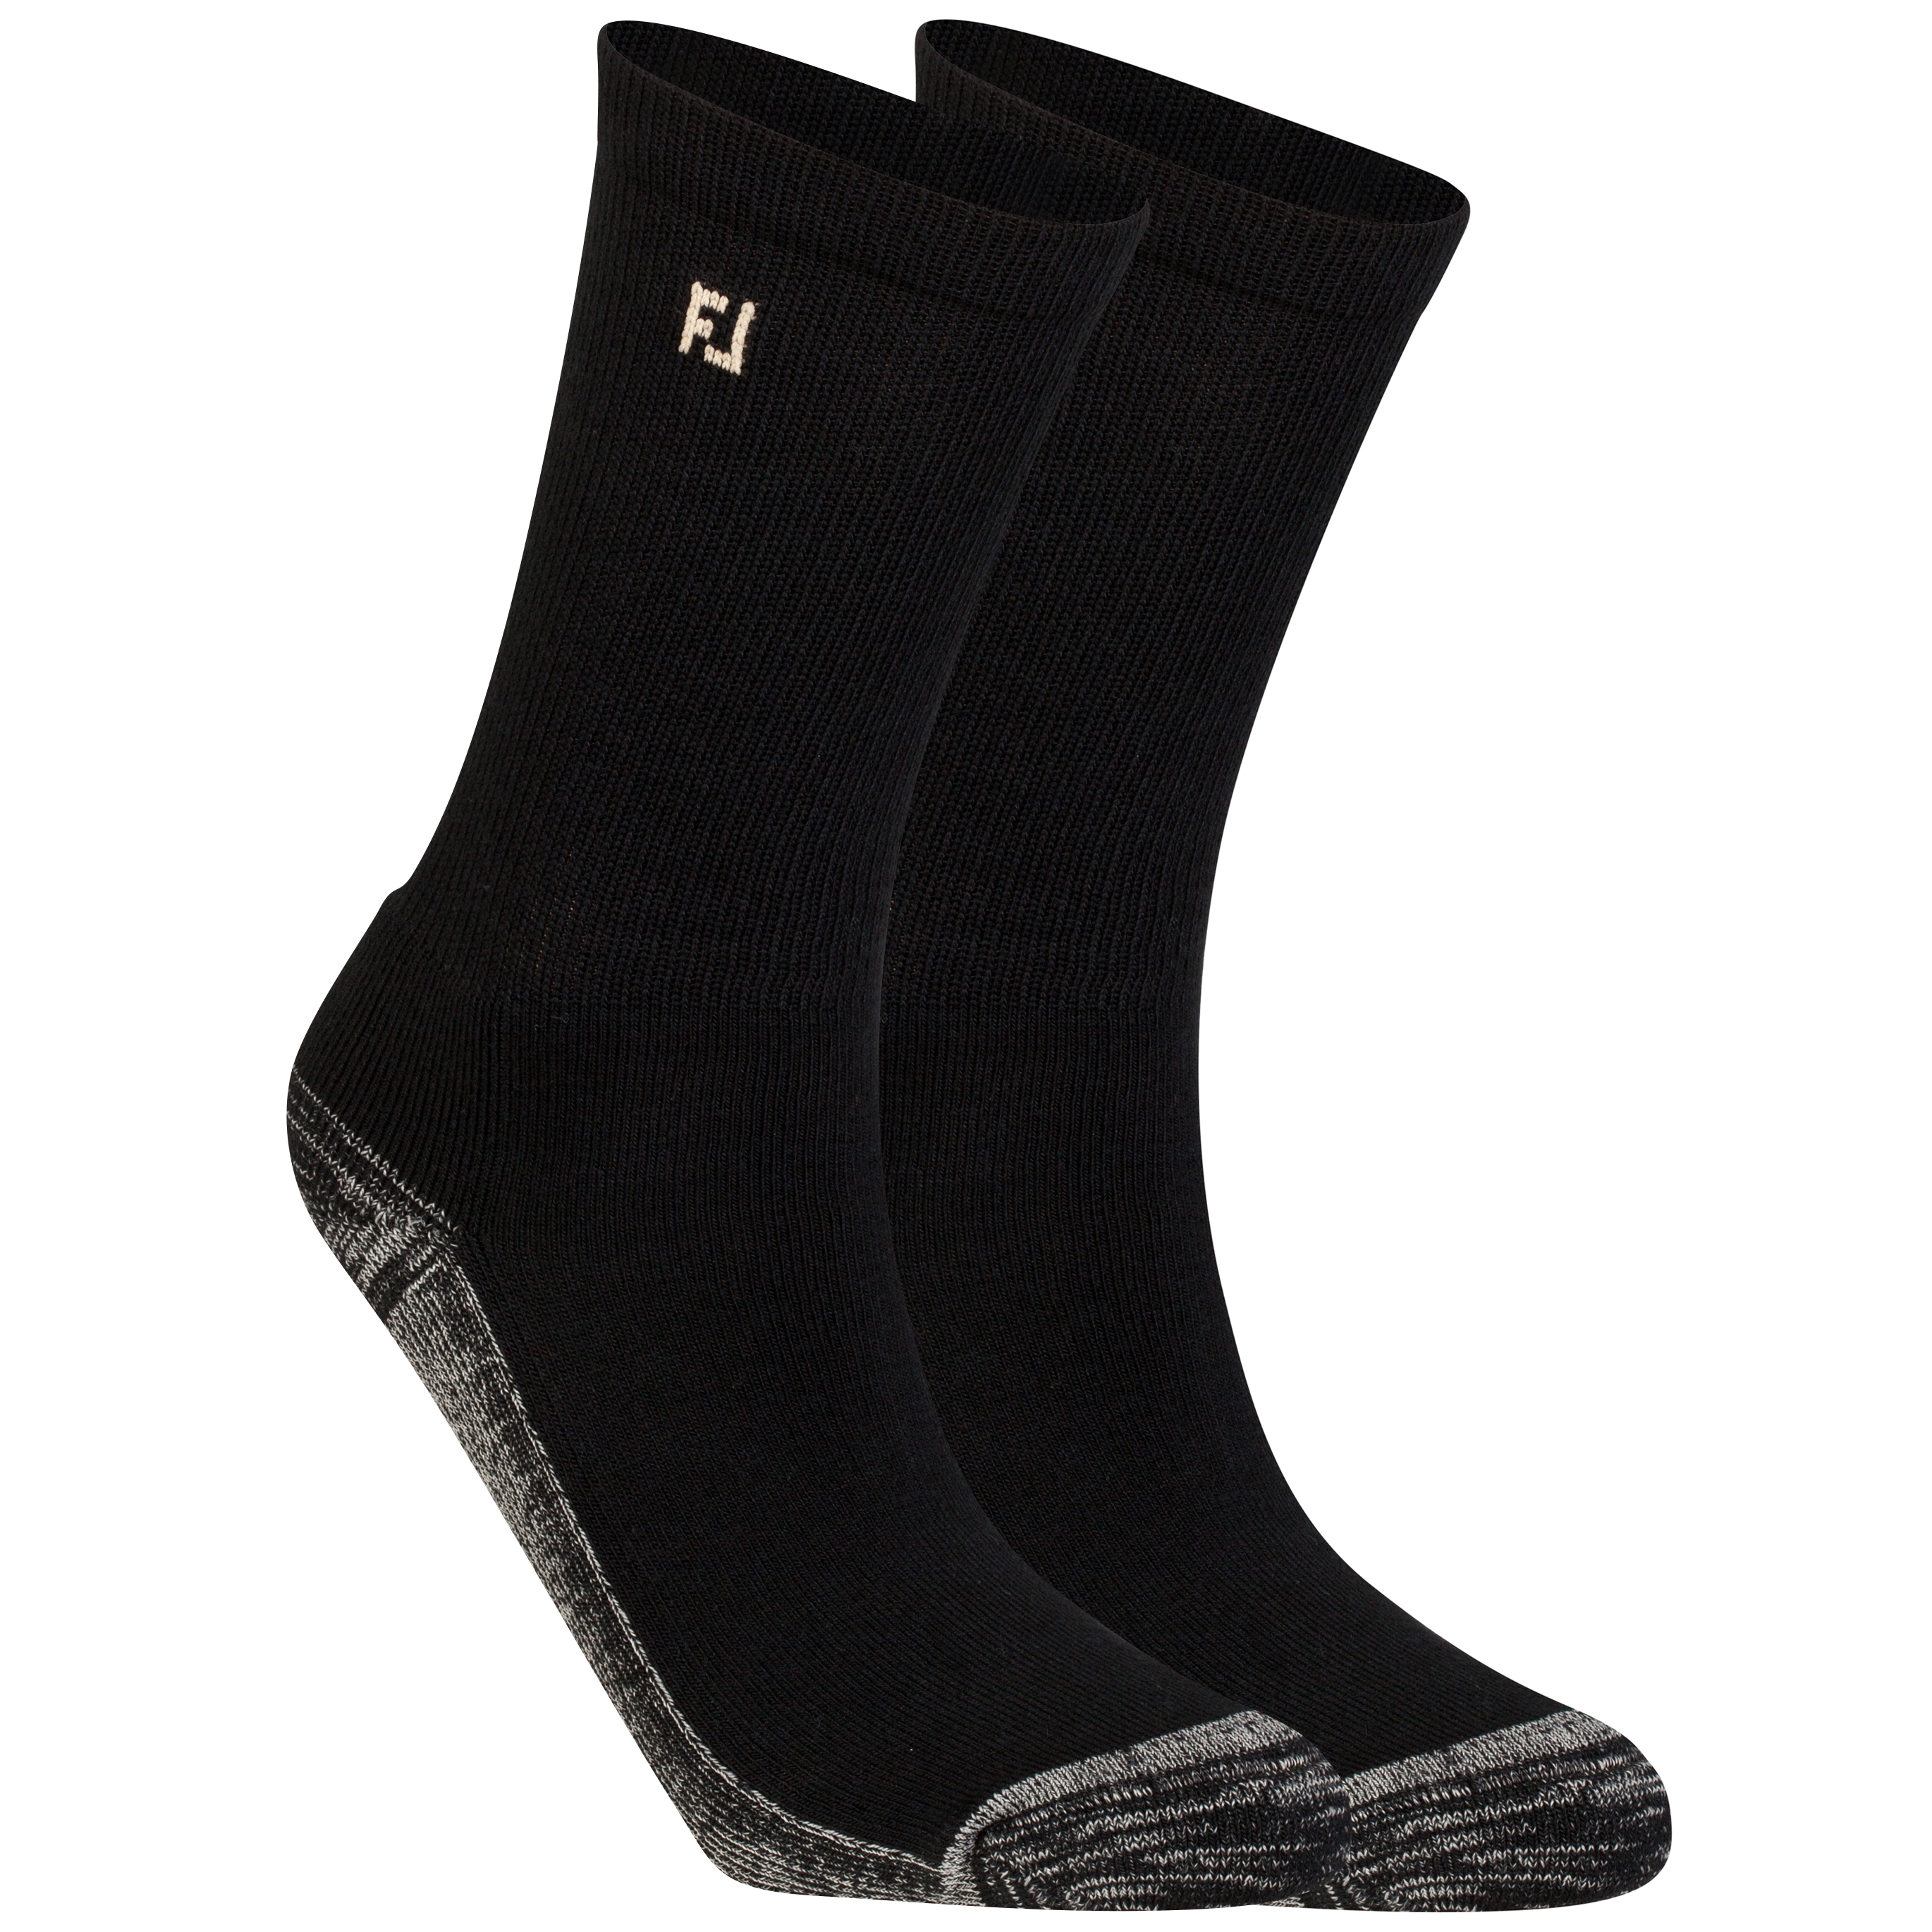 The 2014 Ryder Cup Footjoy ProDry Crew Socks - Black